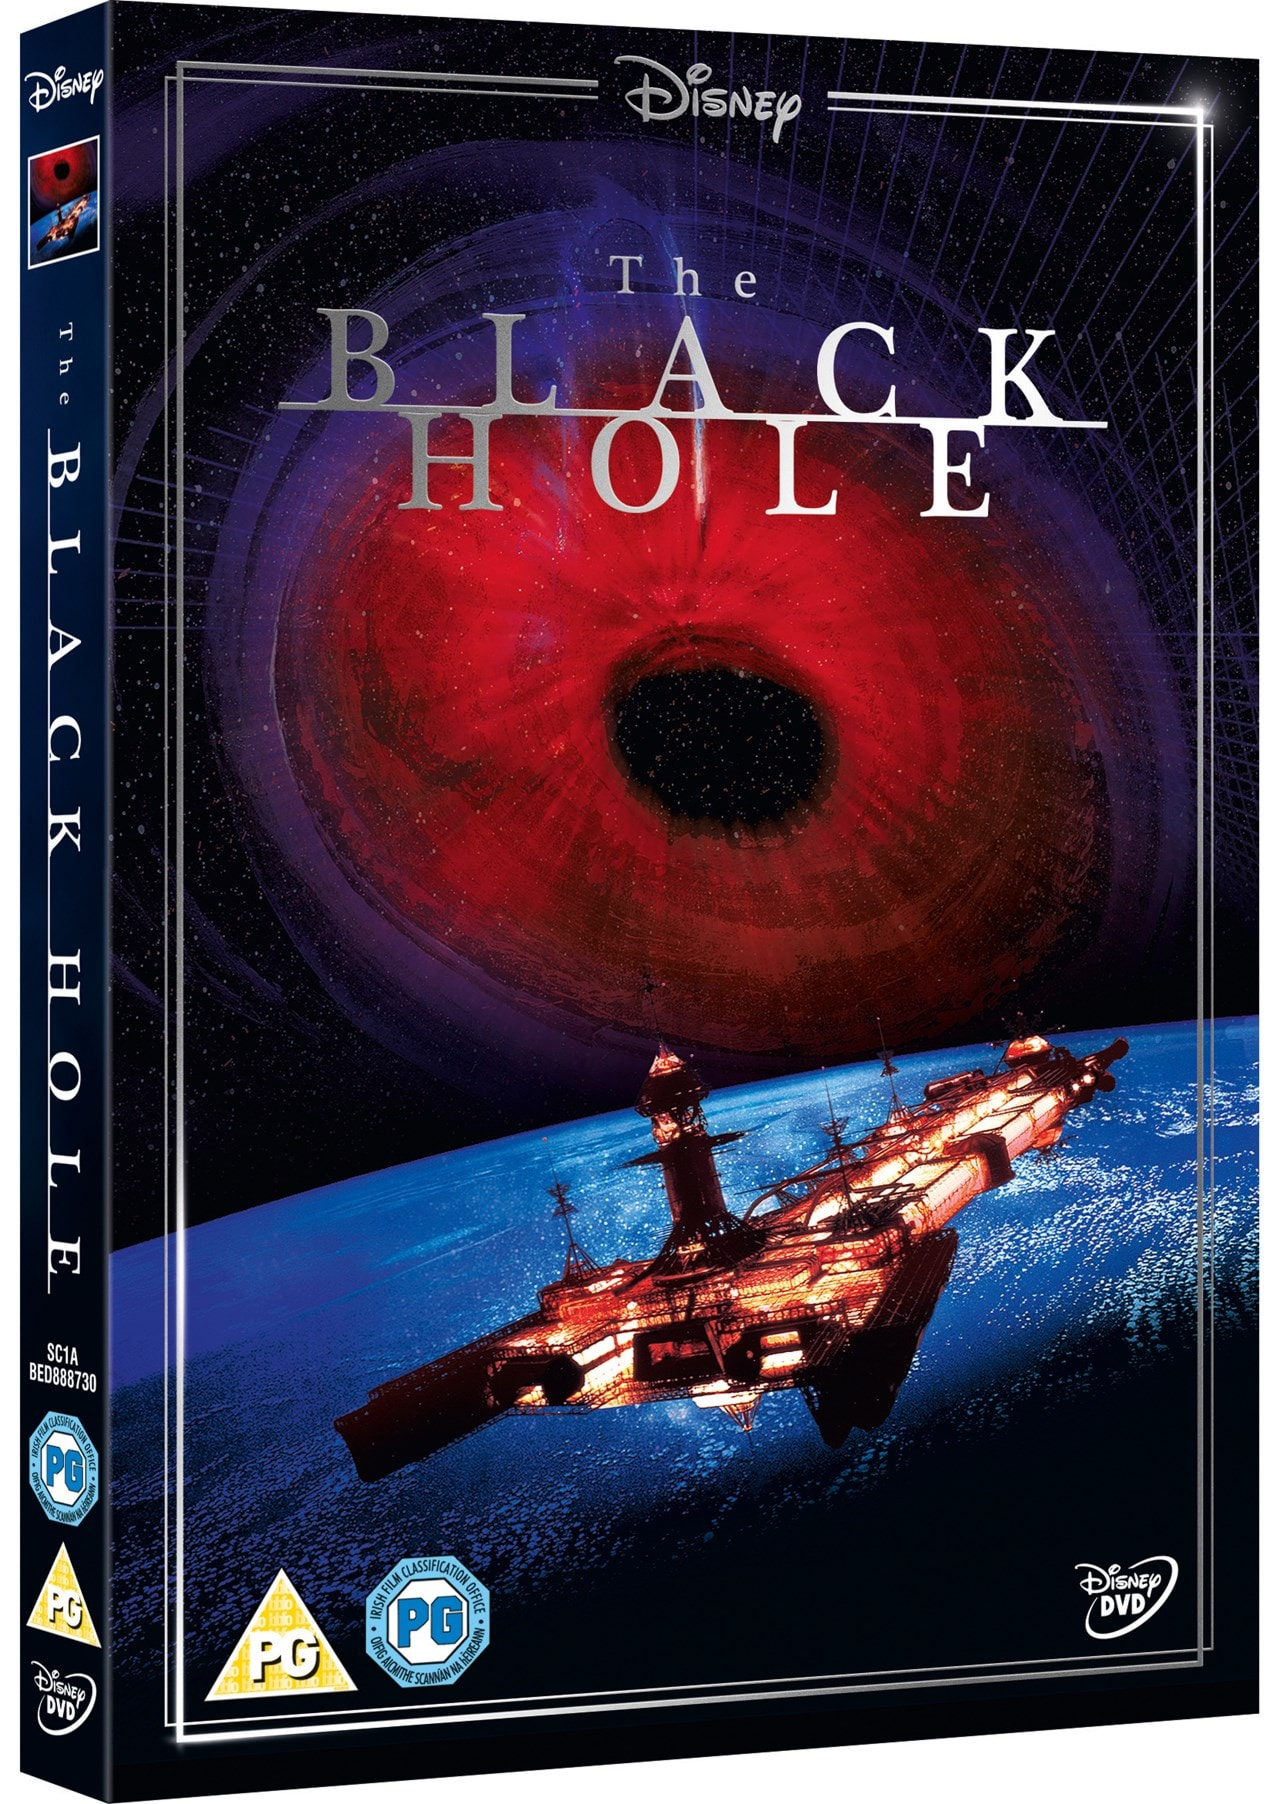 The Black Hole - 4